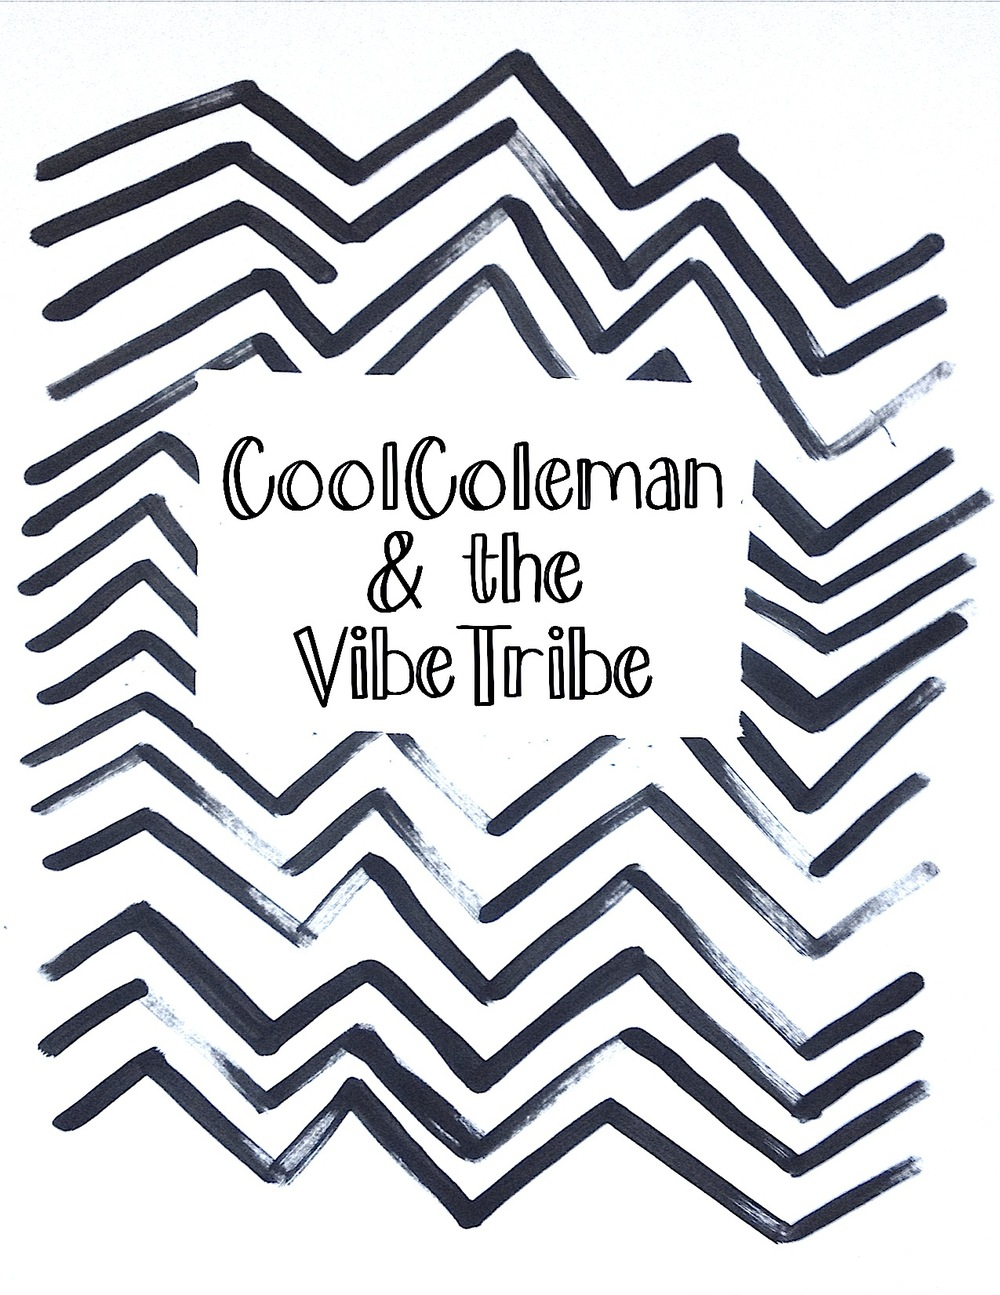 Cool Coleman and the Vibe Tribe Logo